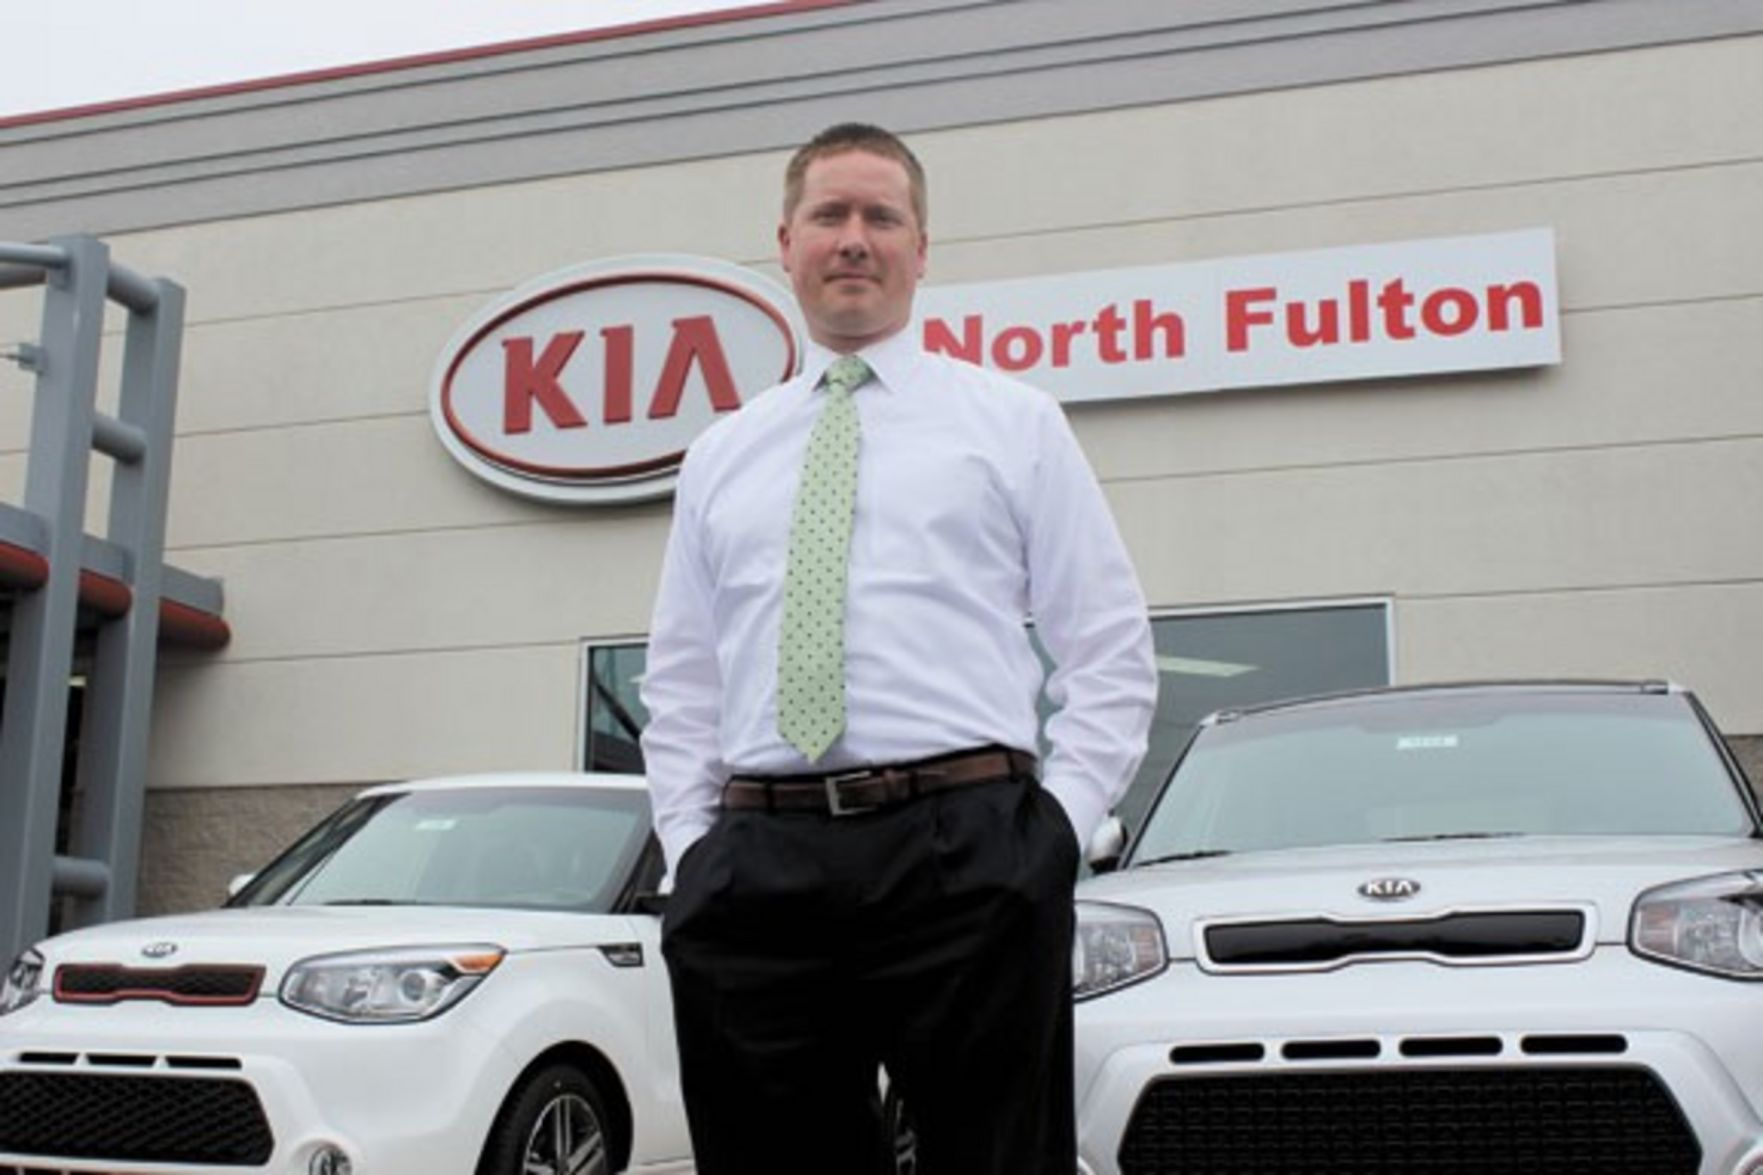 Kia Dealership Raises Quality, Character